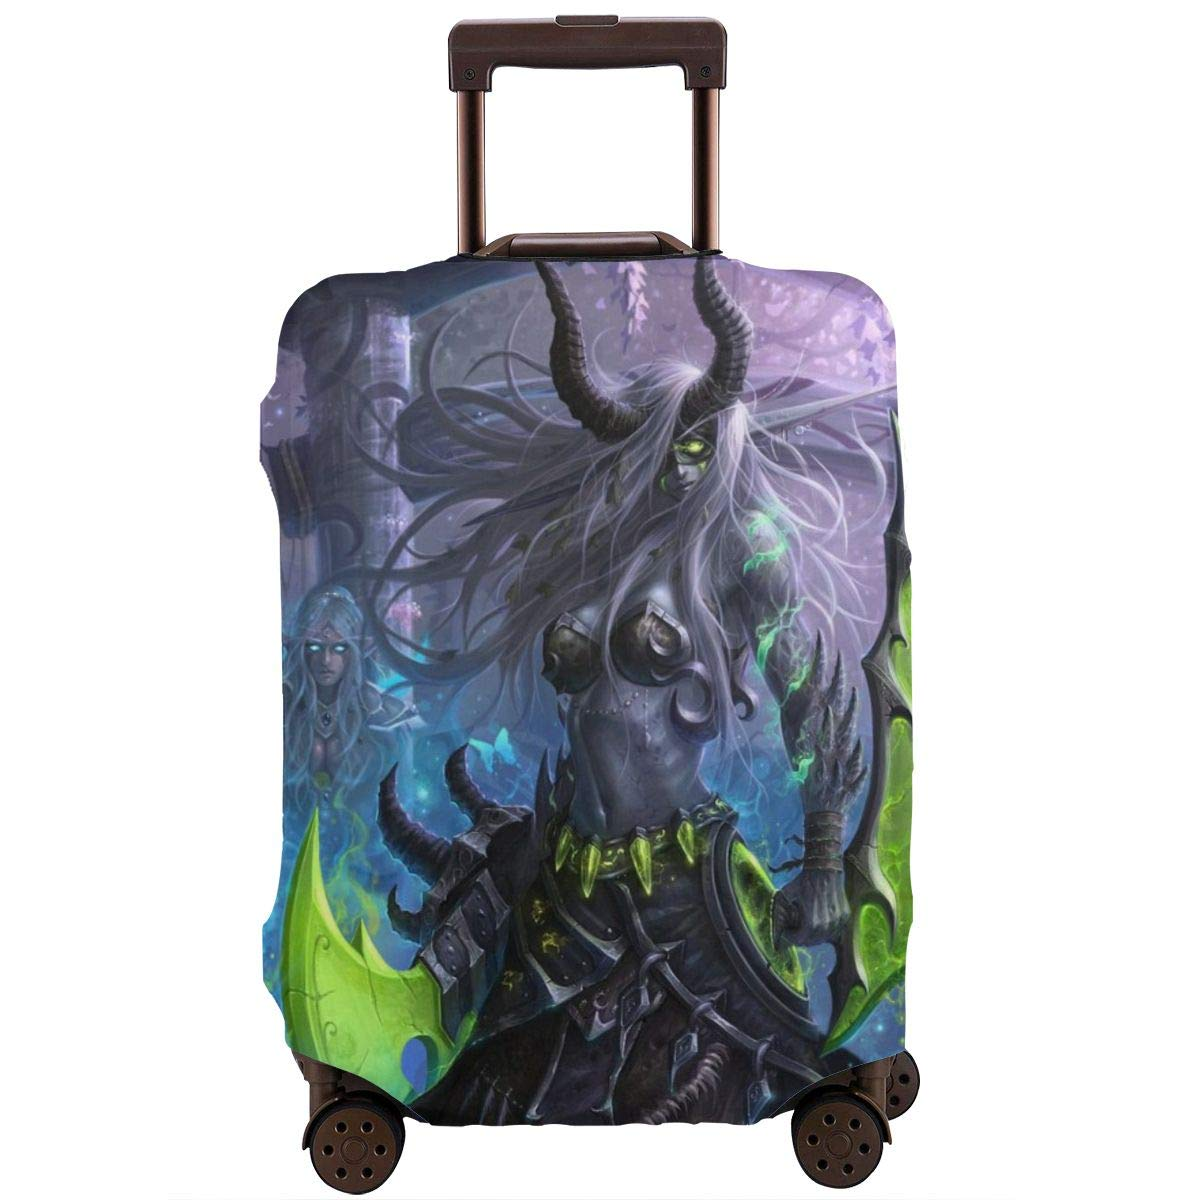 Travel Luggage Cover Night Elf Demon Hunter Travel Luggage Cover Suitcase Protector Fits 26-28 Inch Washable Baggage Covers